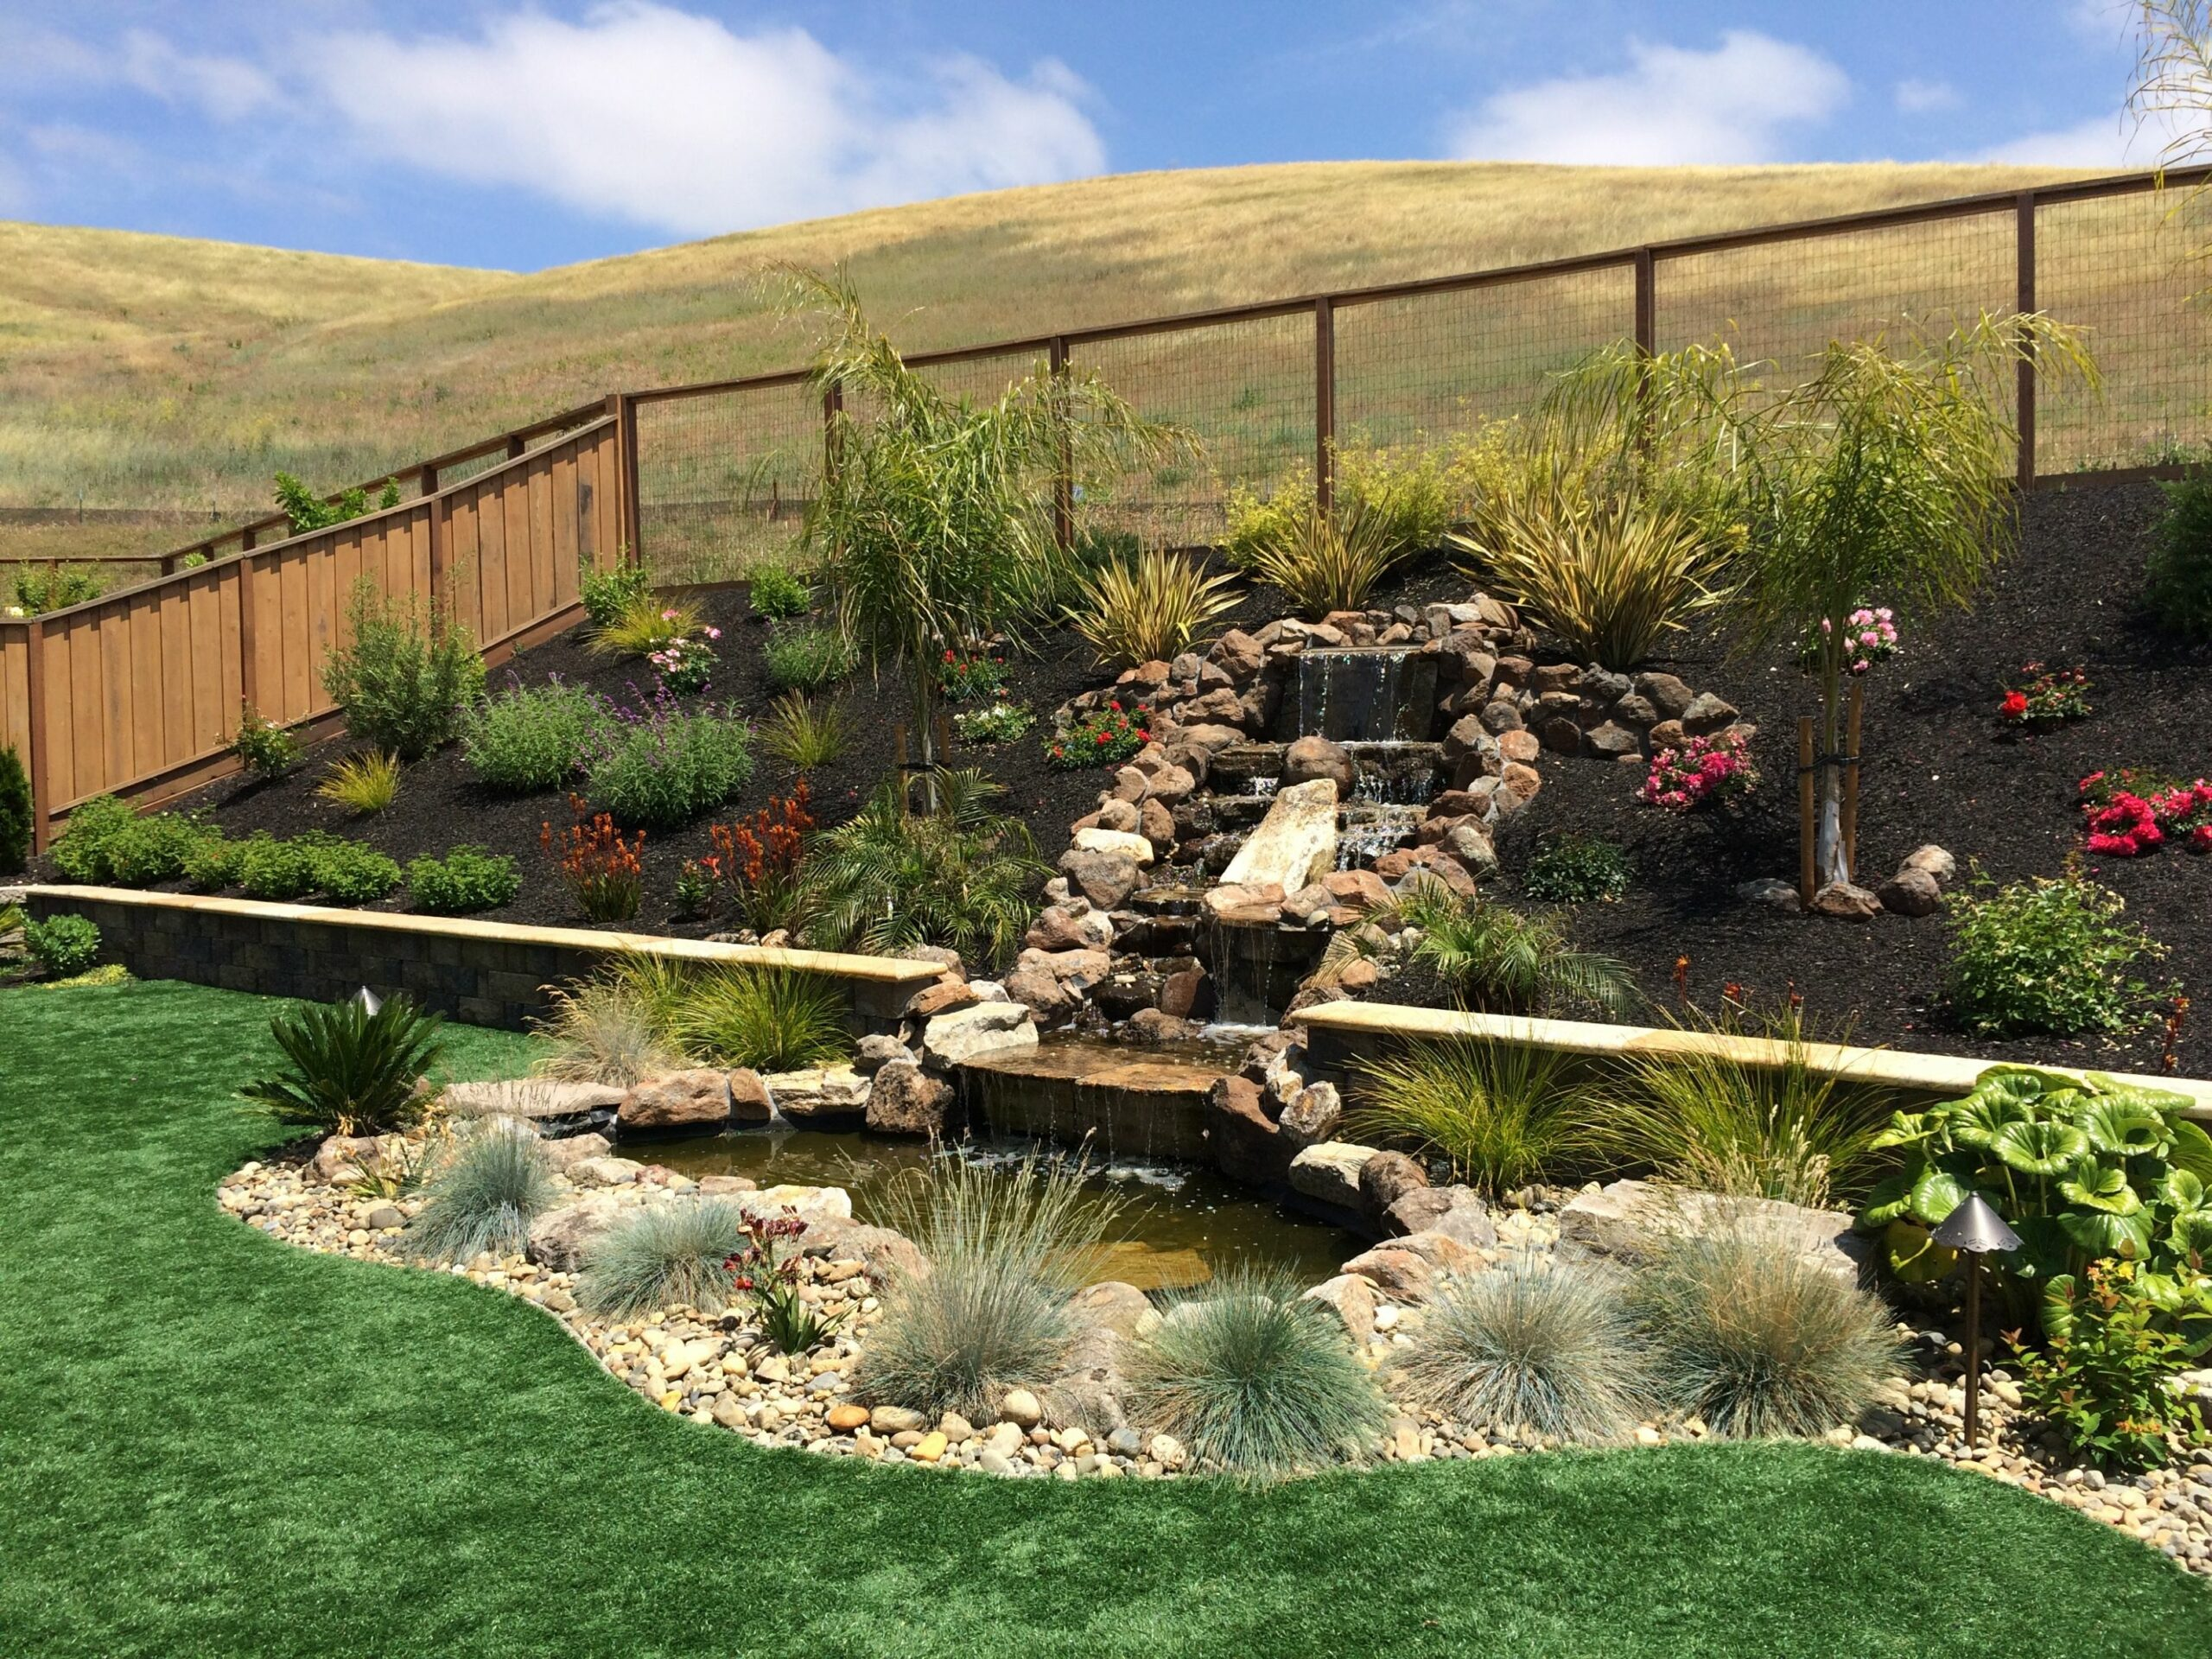 Landscape Design Ideas for Slopes | DPG Design